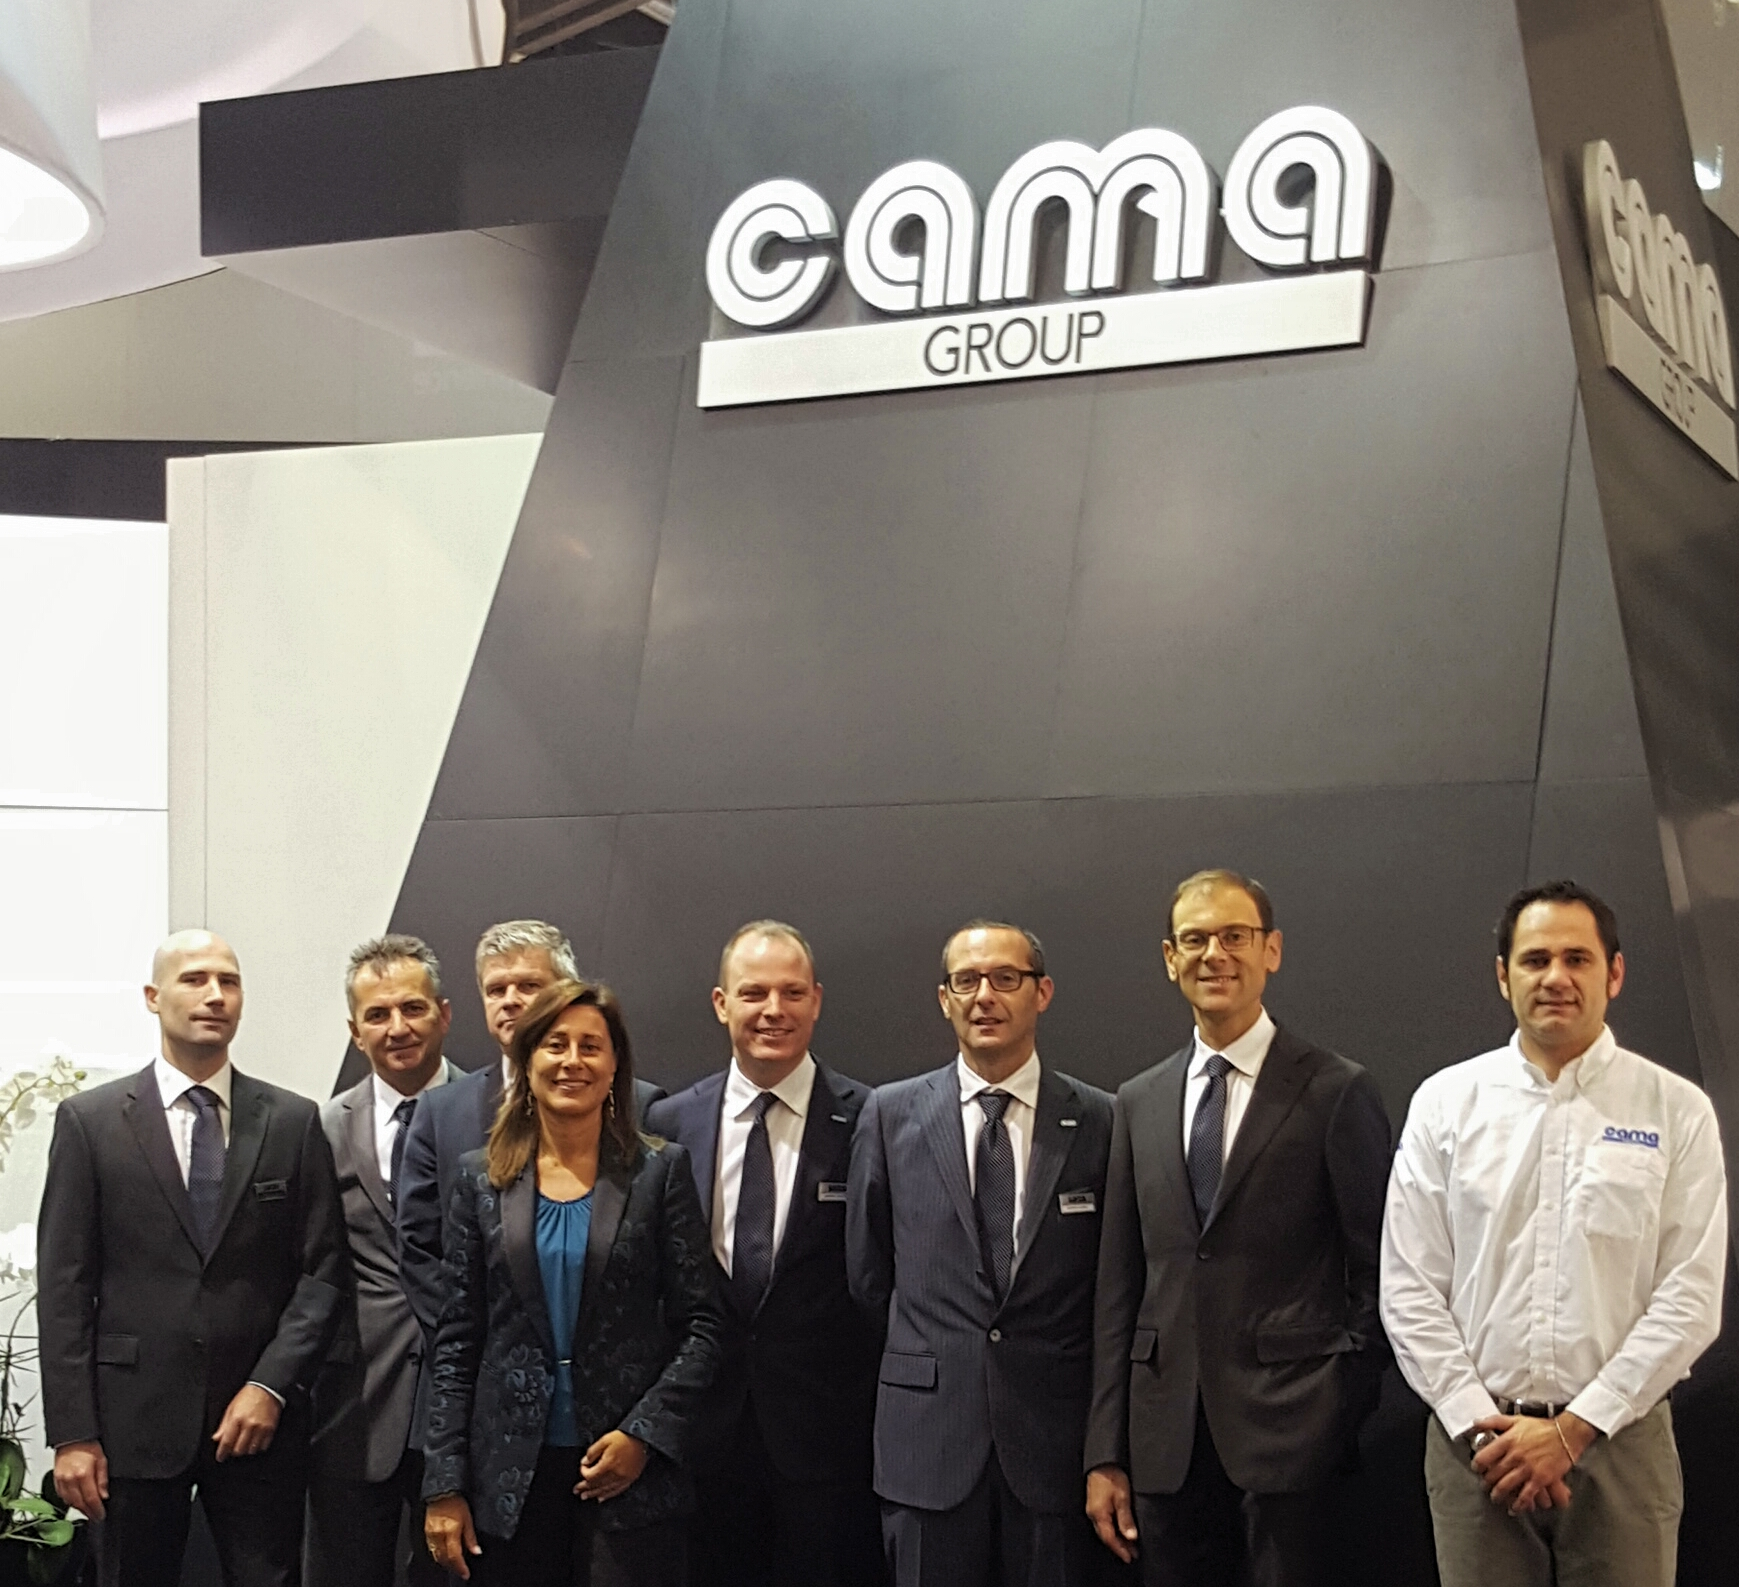 Another great success for CAMA at recent prominent exhibitions: Fachpack in Nuremberg, Germany and Pack Expo West in Las Vegas (NV), USA